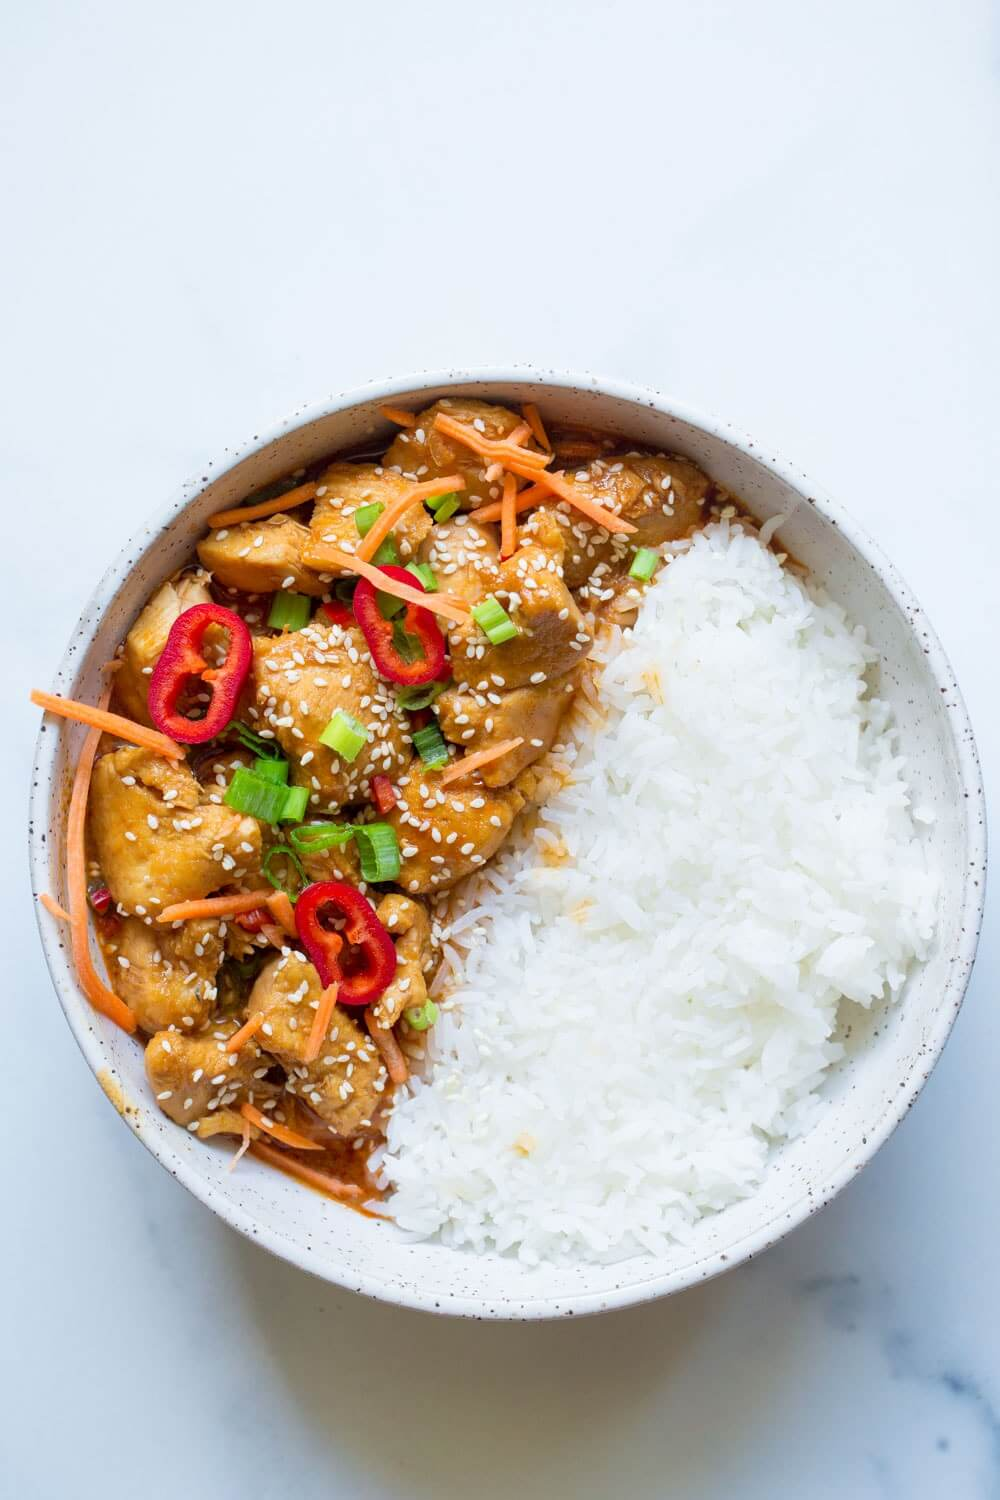 General tso's chicken with red peppers, shredded carrot and rice